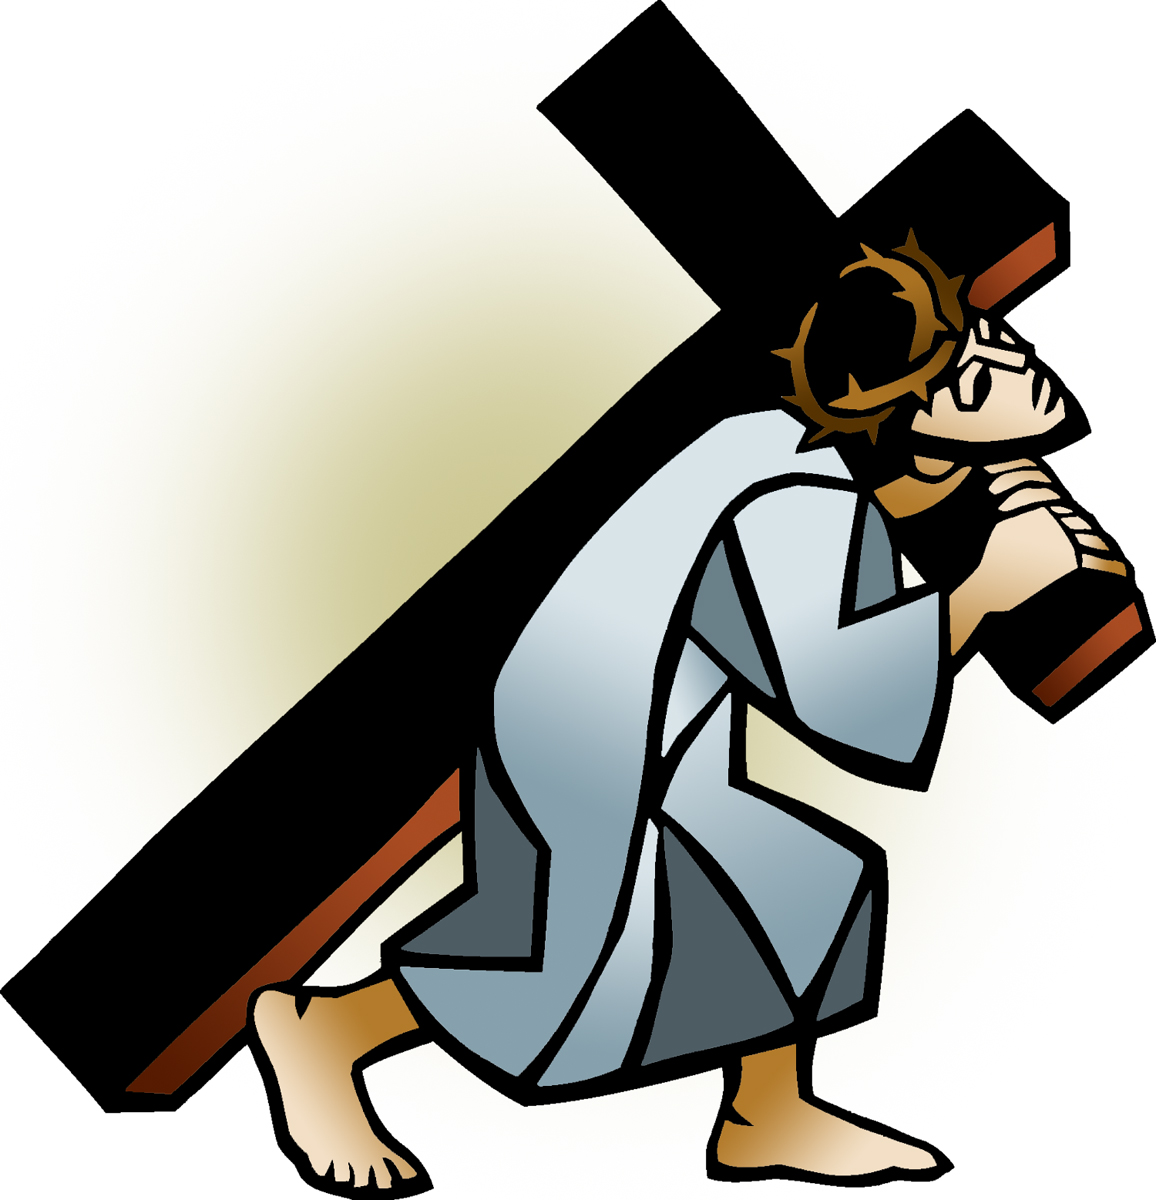 Free clipart of jesus carring a man jpg royalty free library Carrying Cliparts   Free download best Carrying Cliparts on ... jpg royalty free library